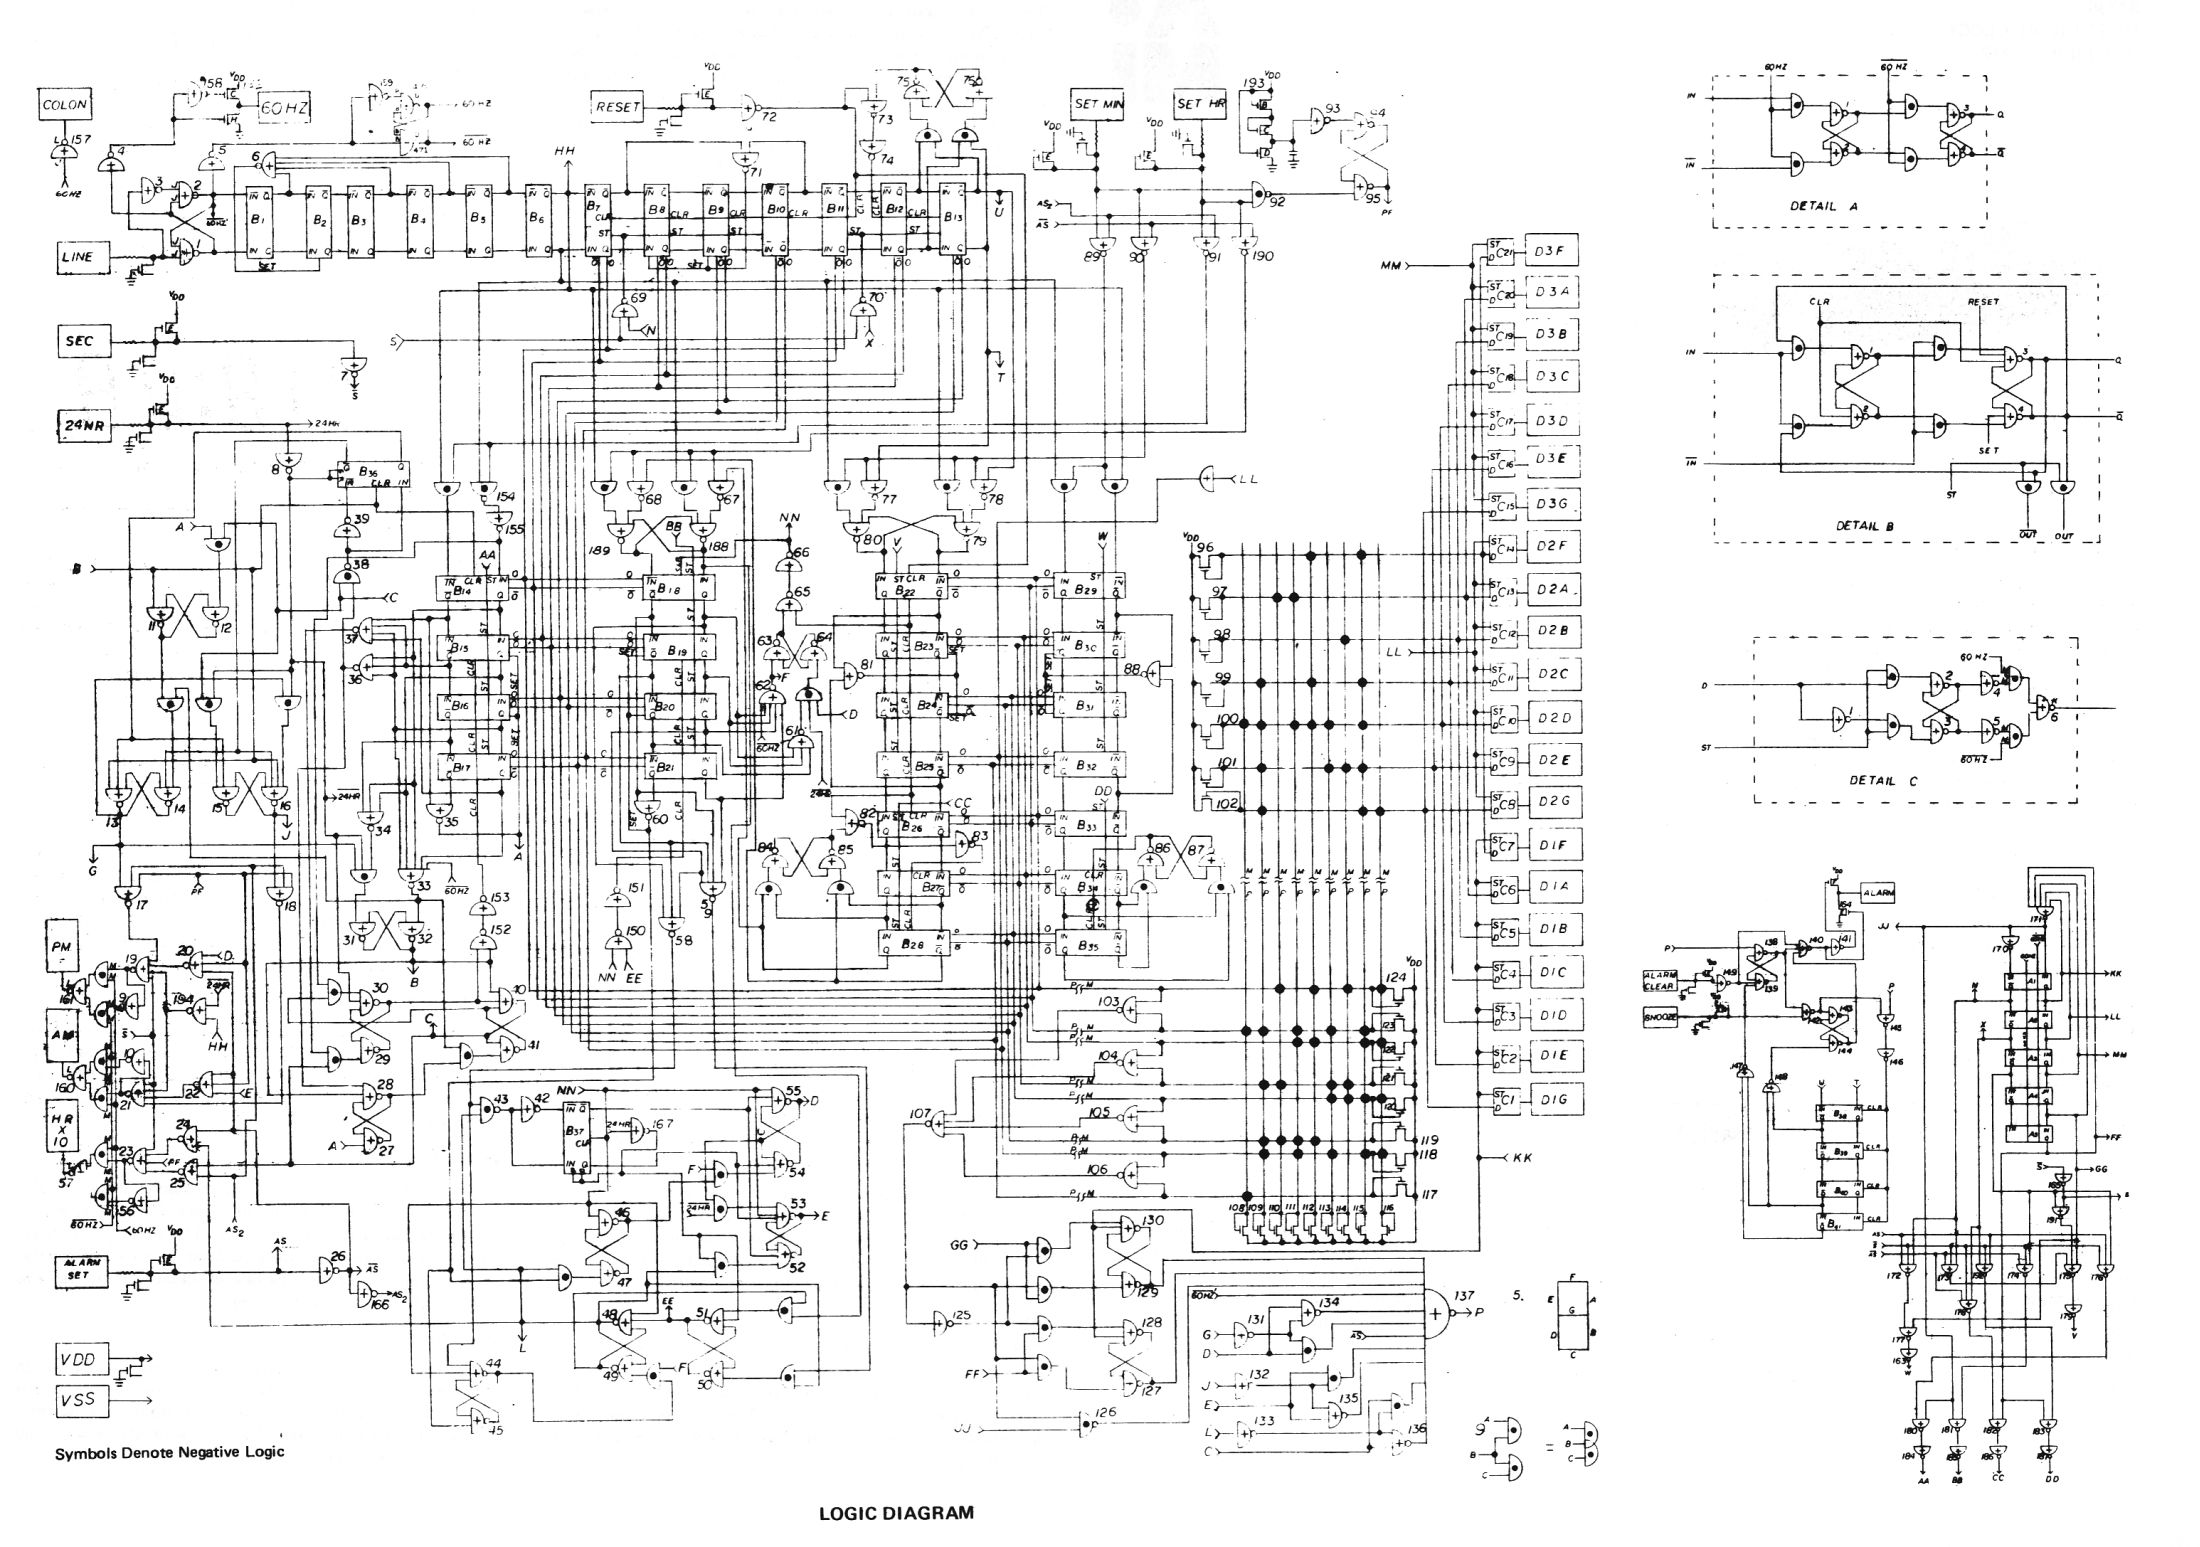 Fluorescent Light Wiring Diagram For Drawing Clock Explore Schematic Vintage Digital Circuits Pro Audio Design Forum Rh Proaudiodesignforum Com Fixture